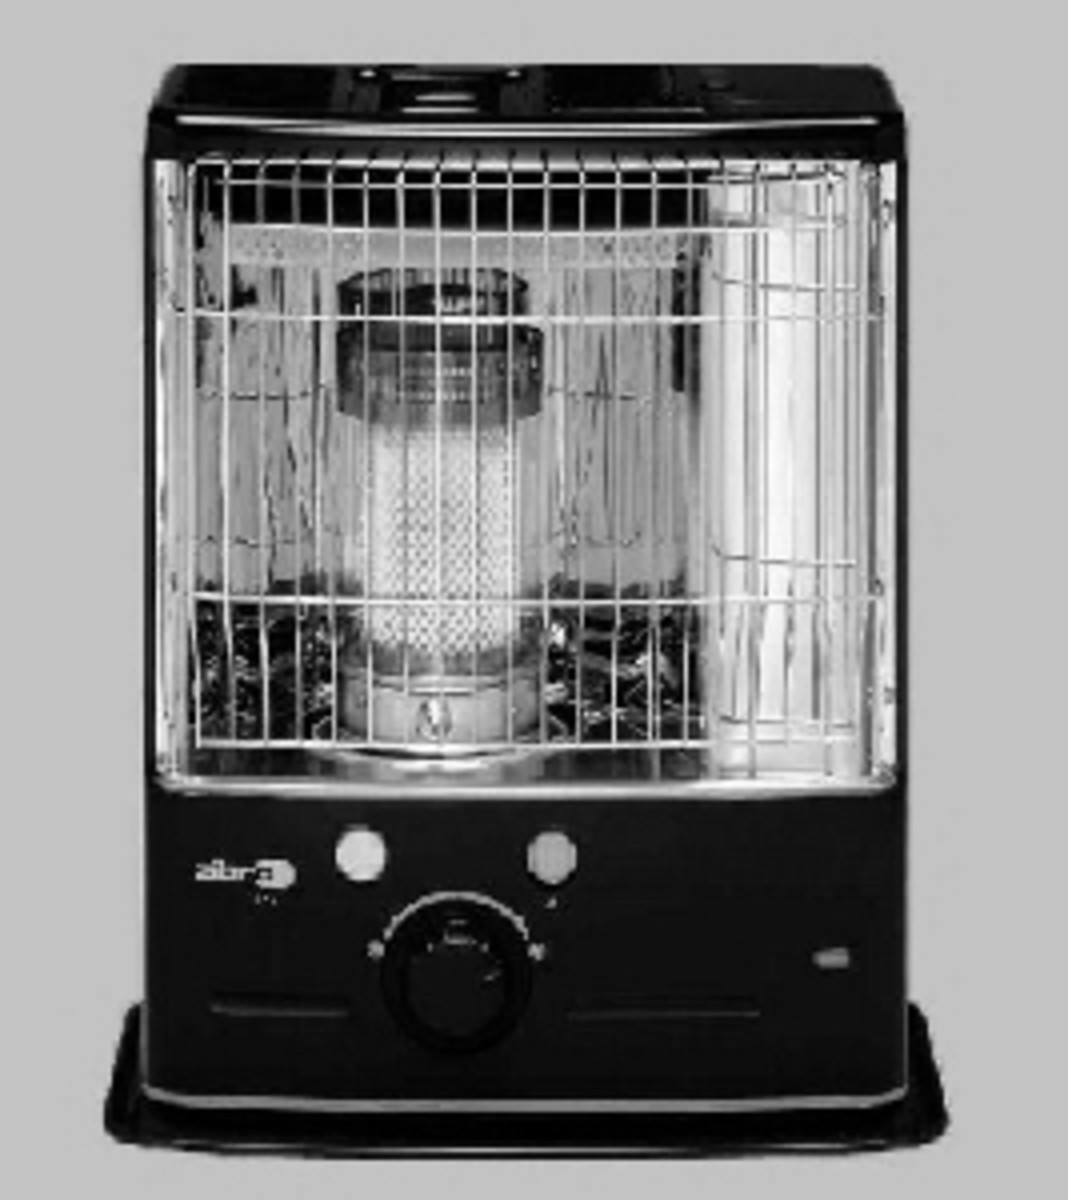 A Paraffin Heater similar to the one we had